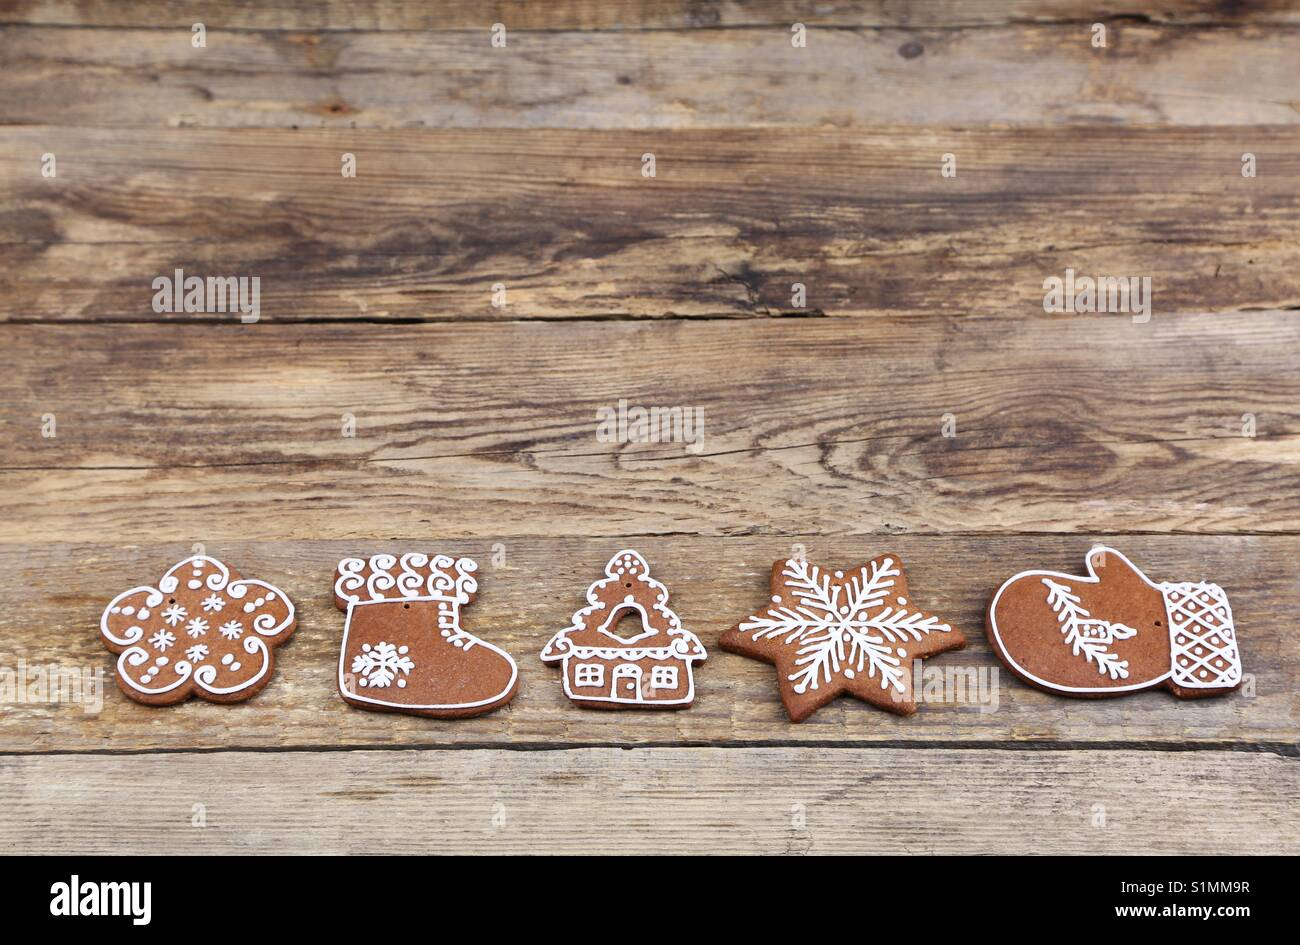 Christmas gingerbread cookies - Stock Image